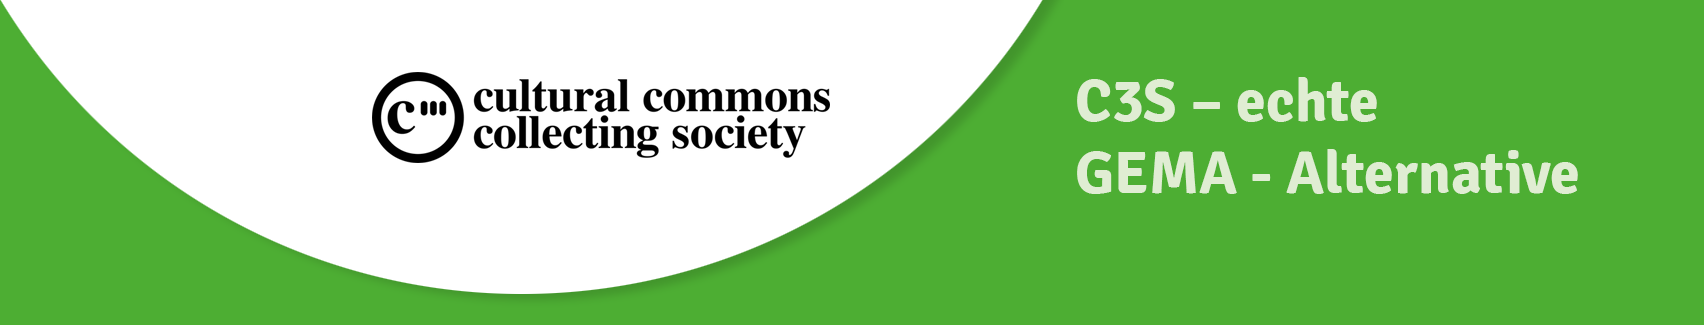 Cultural Commons Collecting Society (C3S)